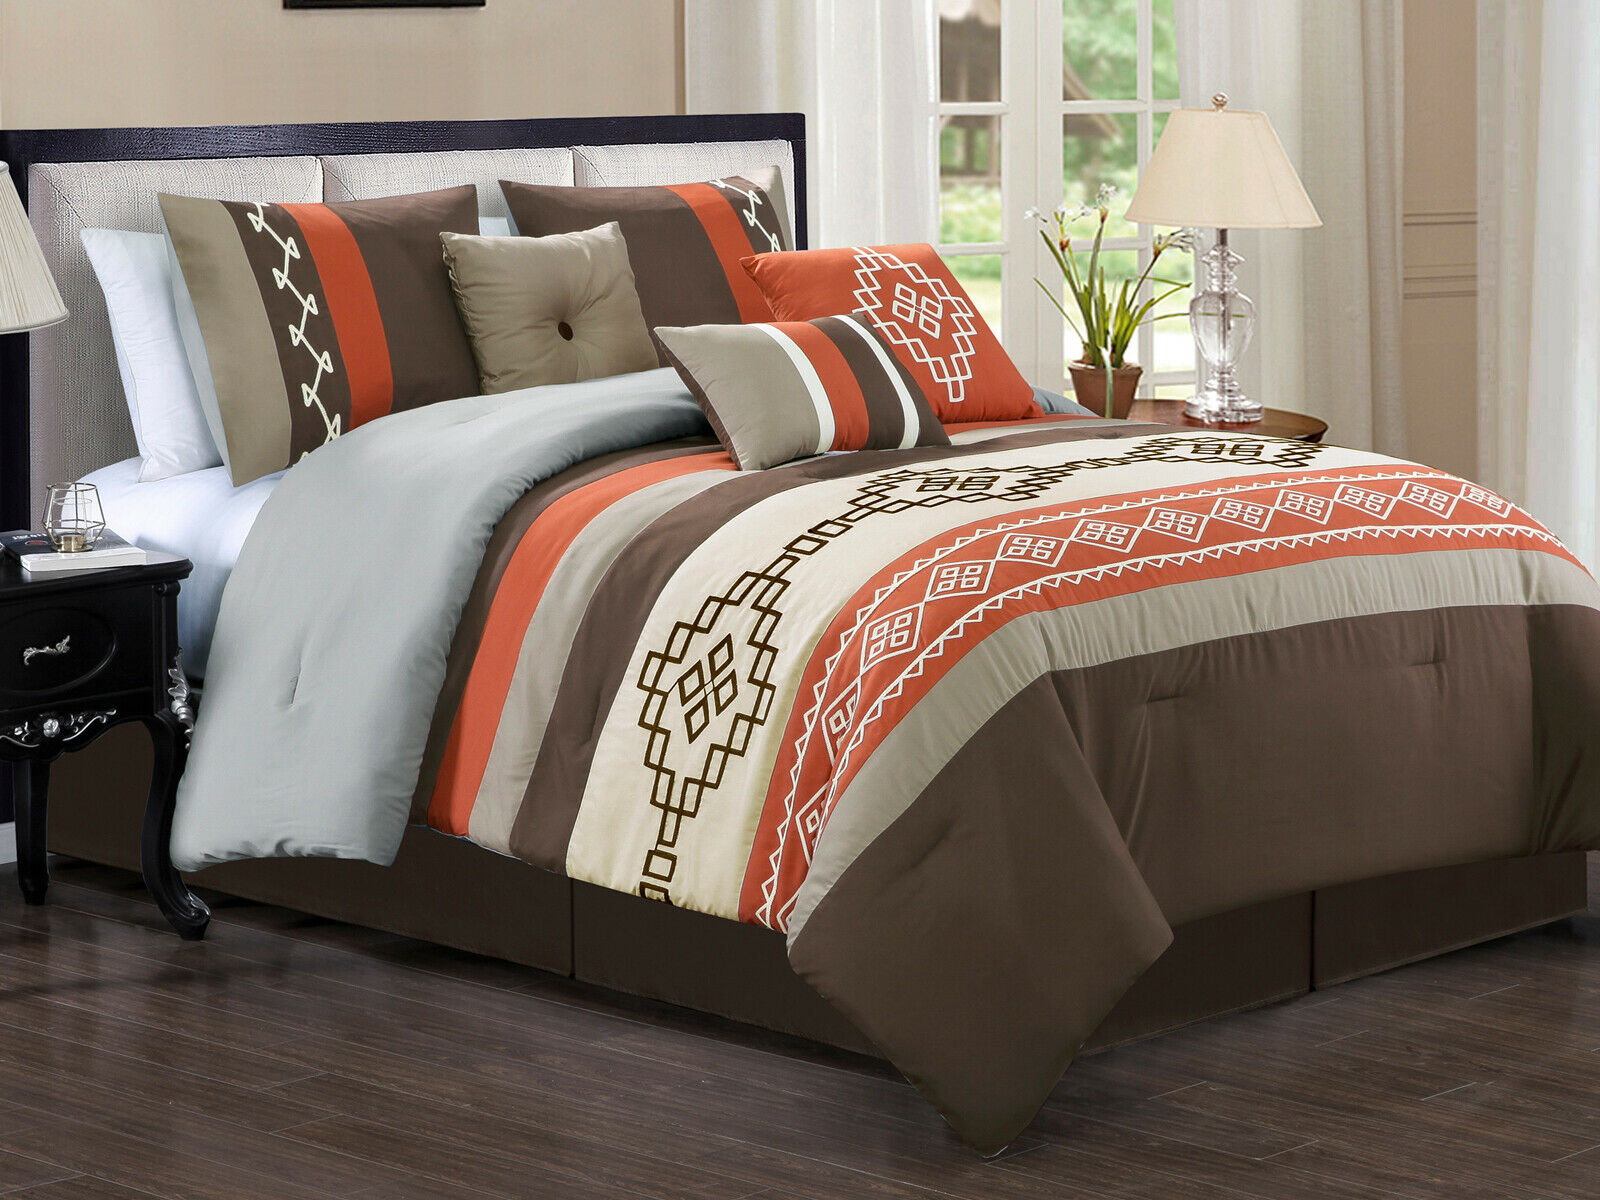 11-Pc Makawee Southwest Rectangle Comforter Curtain Set Taupe Rust braun Queen